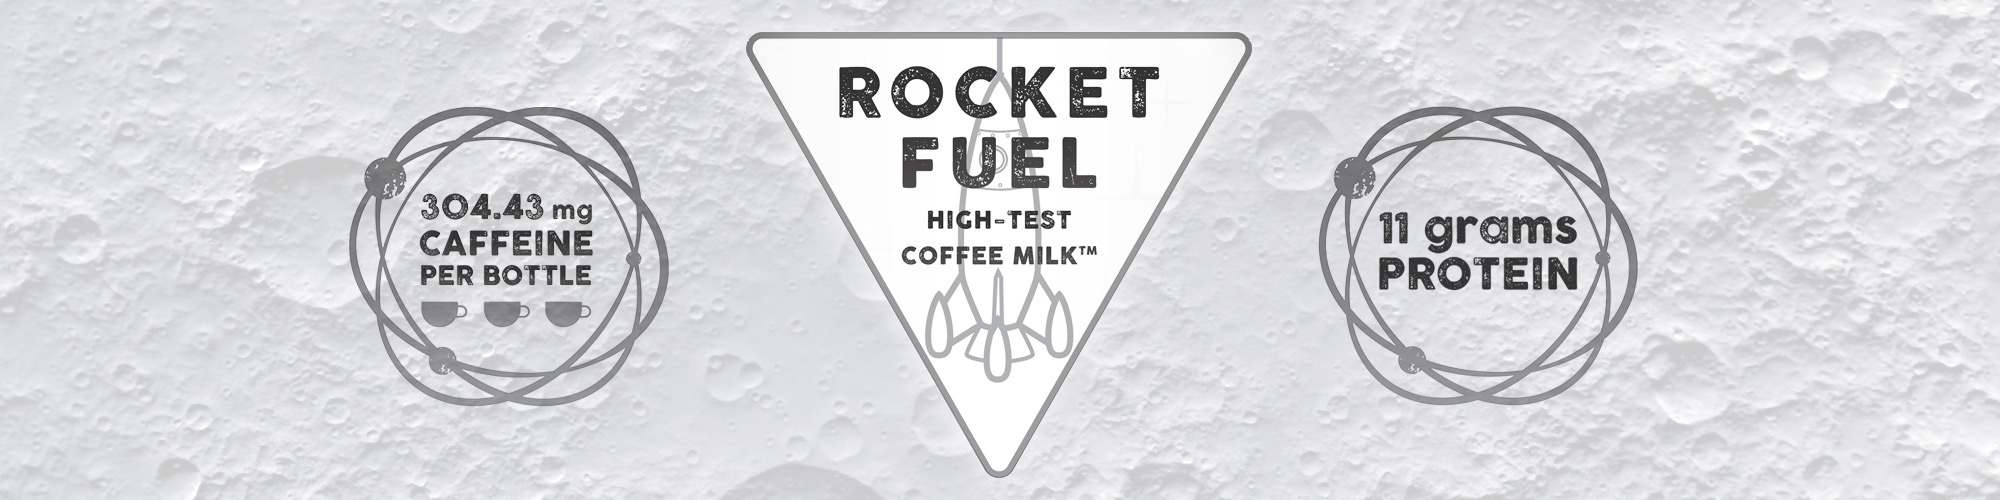 Rocket Fuel Coffee Milk